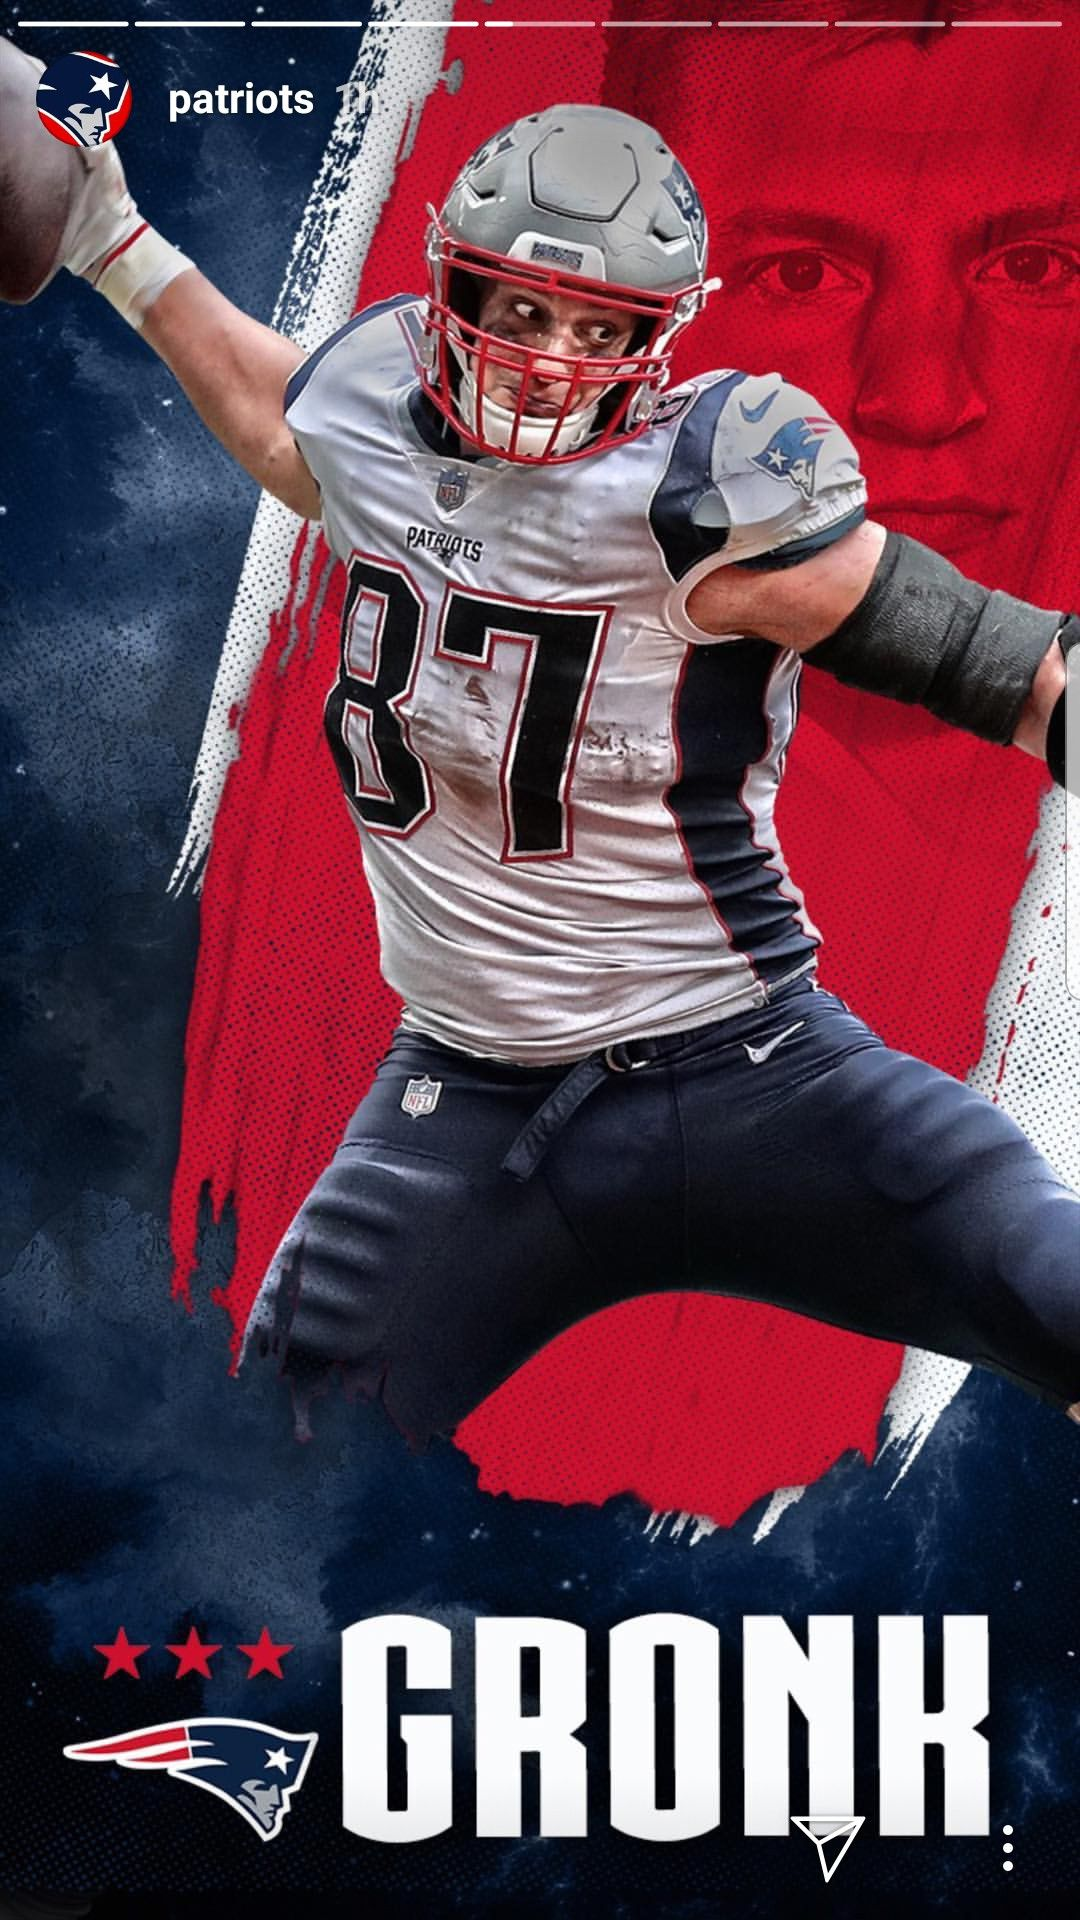 Pin By Mikey On Patriots New England Patriots Cheerleaders New England Patriots Patriots Football